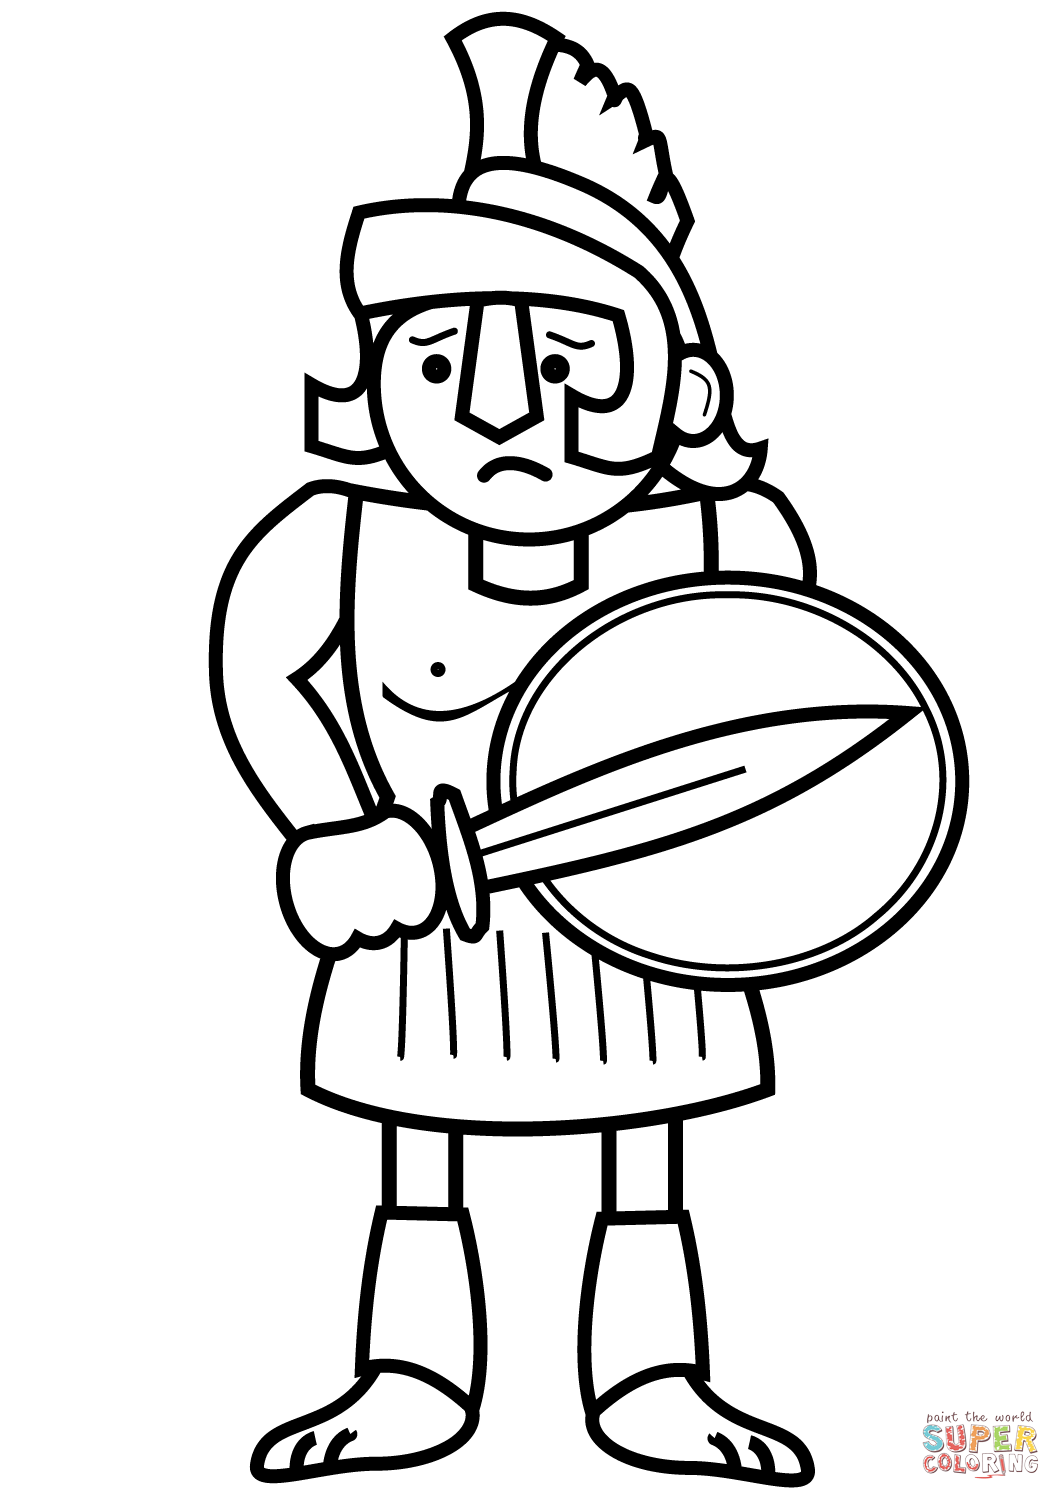 1061x1500 Cartoon Ancient Greek Soldier Coloring Page Free Printable